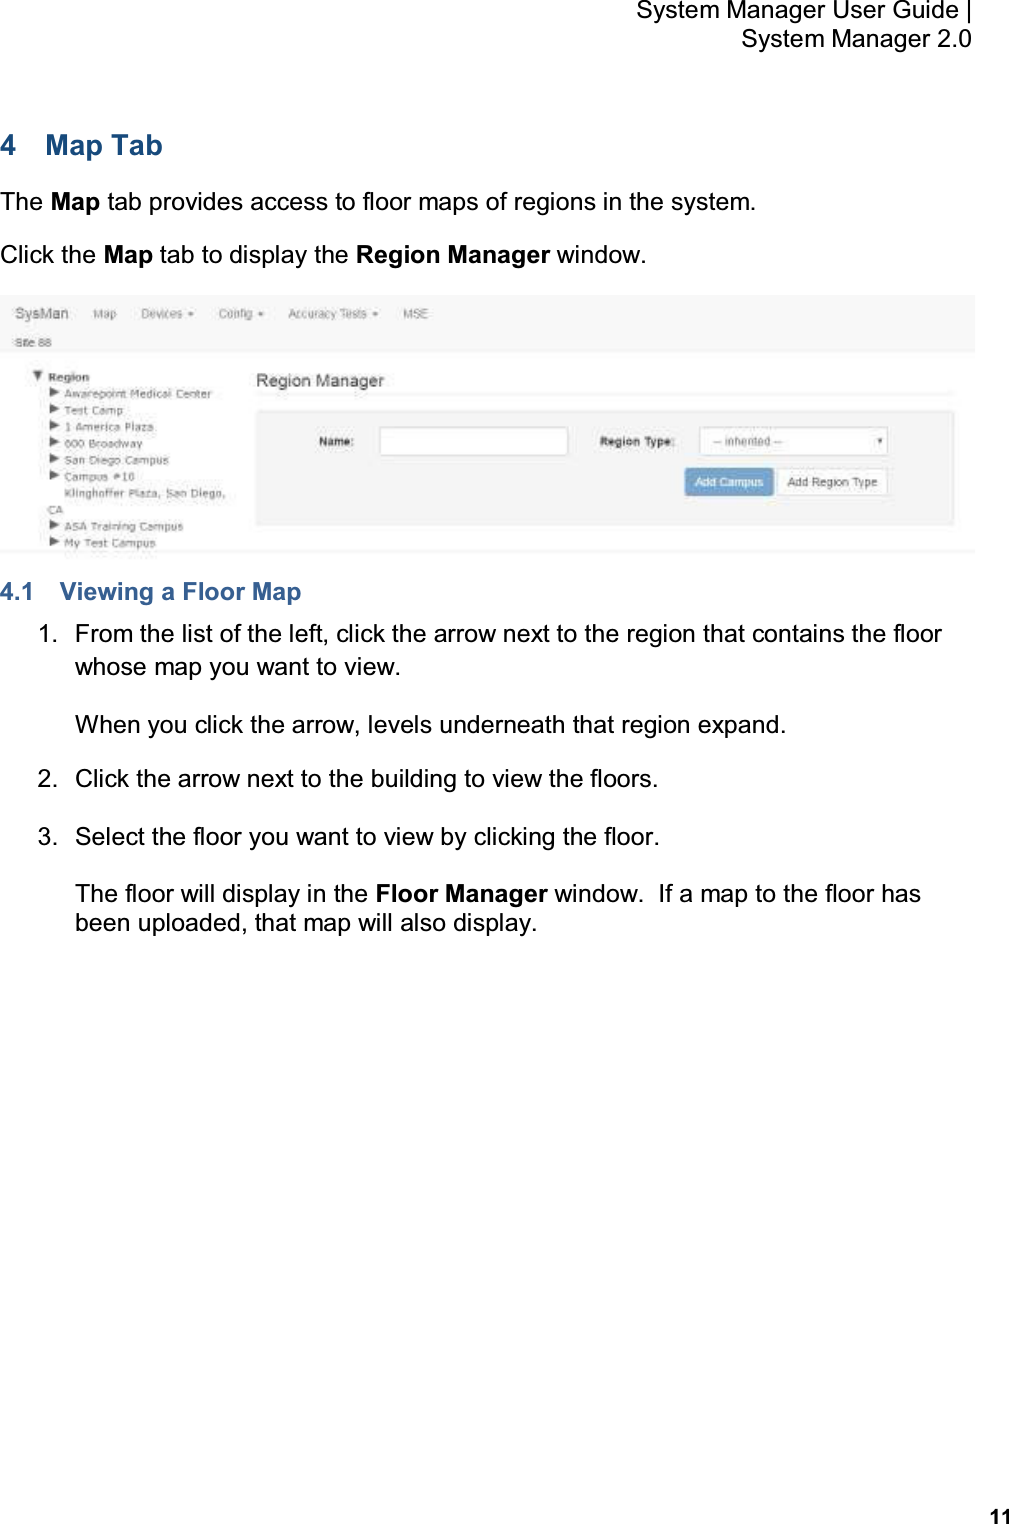 11 System Manager User Guide    System Manager 2.0 4  Map Tab The Map tab provides access to floor maps of regions in the system. Click the Map tab to display the Region Manager window.  4.1  Viewing a Floor Map 1.  From the list of the left, click the arrow next to the region that contains the floor whose map you want to view. When you click the arrow, levels underneath that region expand. 2.  Click the arrow next to the building to view the floors. 3.  Select the floor you want to view by clicking the floor. The floor will display in the Floor Manager window.  If a map to the floor has been uploaded, that map will also display.